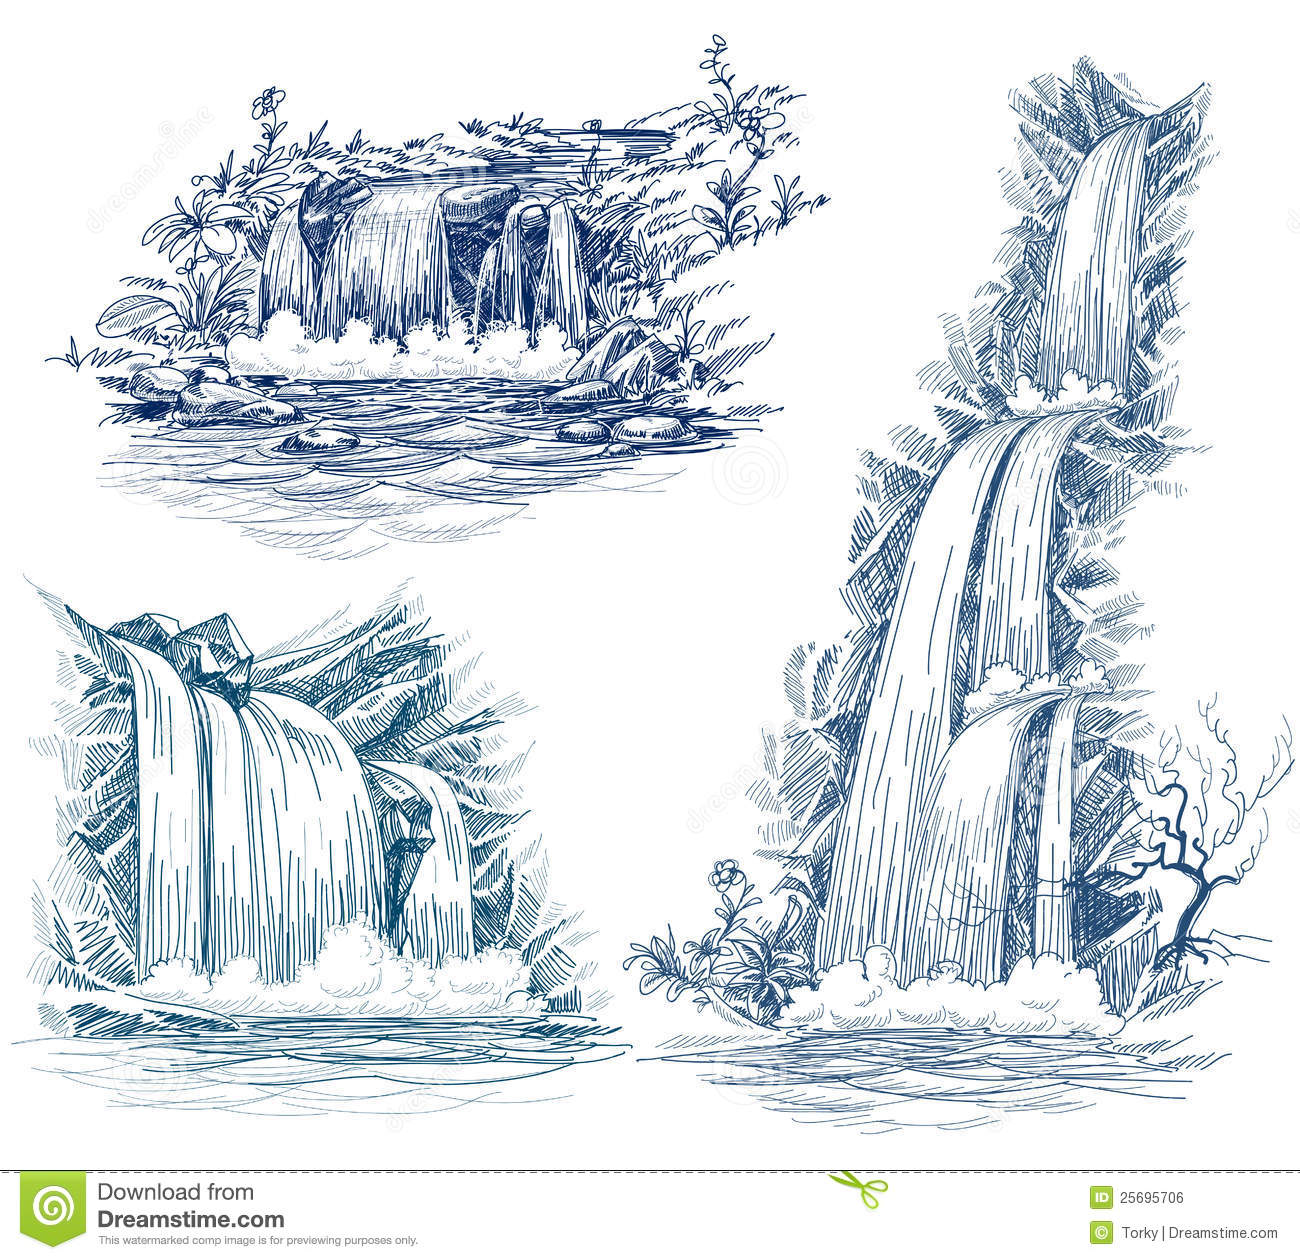 Watch besides Royalty Free Stock Image Water Falls Drawing Image25695706 besides Fallingwater as well Alfred Hitchcock North By Northwest moreover Precedence Studies Falling Water. on frank lloyd wright falling water design